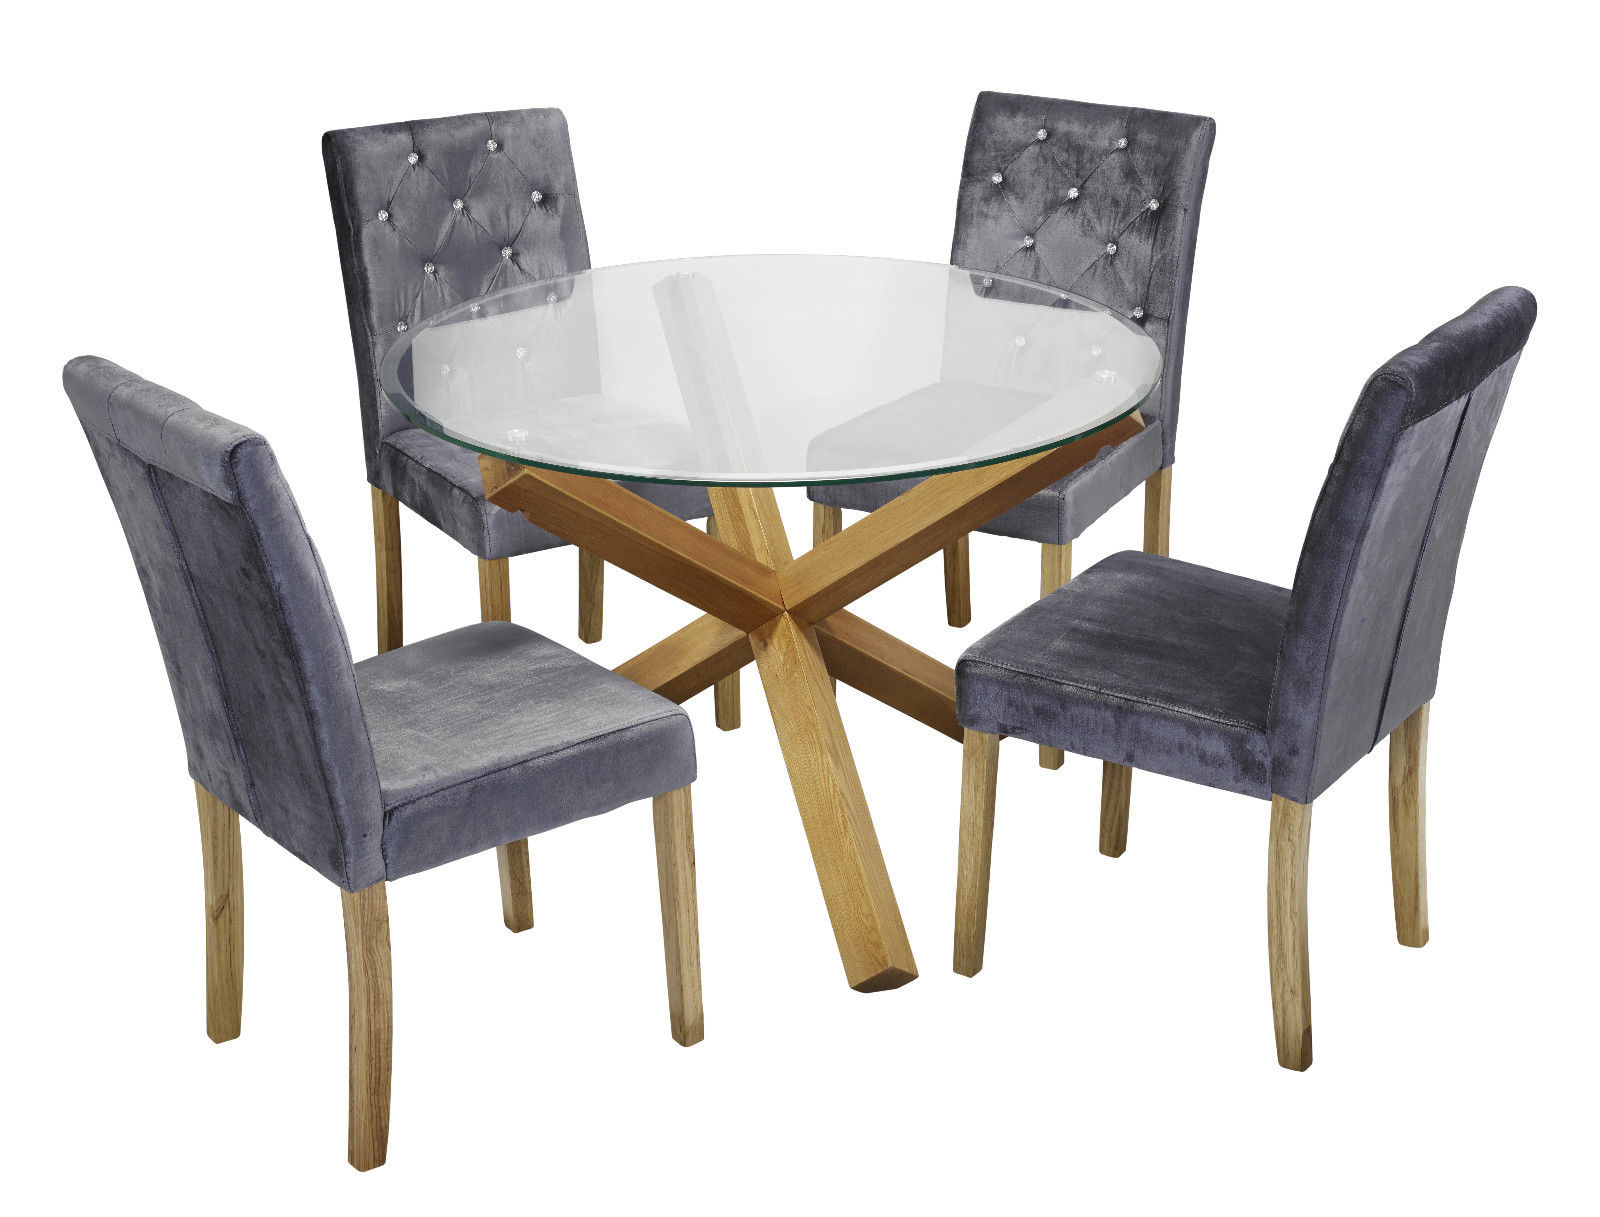 Trendy Round Dining Tables With Glass Top Pertaining To Details About Trend Solid Oak Round Glass Top Dining Table & 4 Amour Silver  Fabric Chair Set (Gallery 12 of 30)